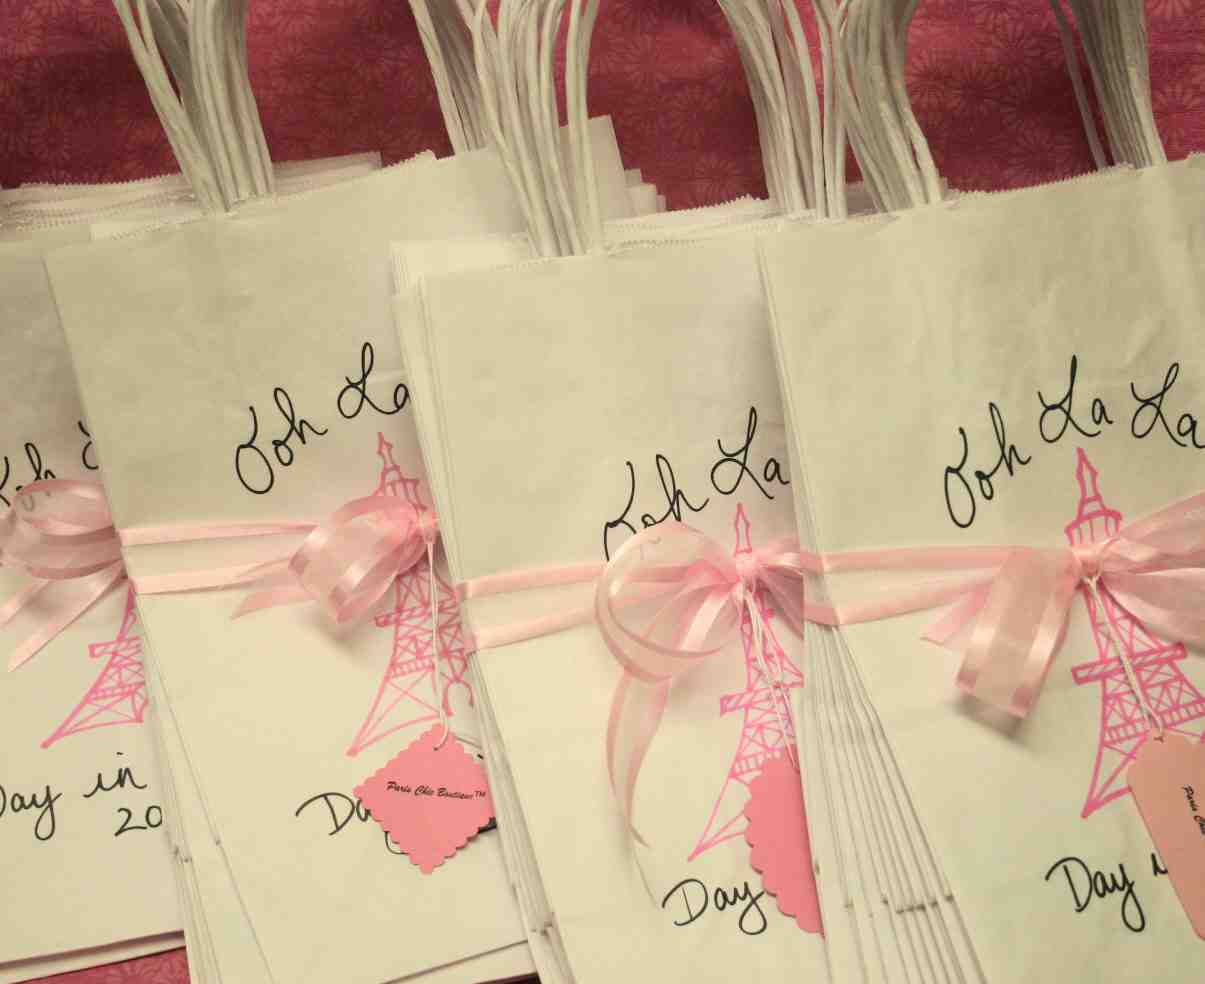 Bridal Shower Gift Bags: How to Fill for Friends and